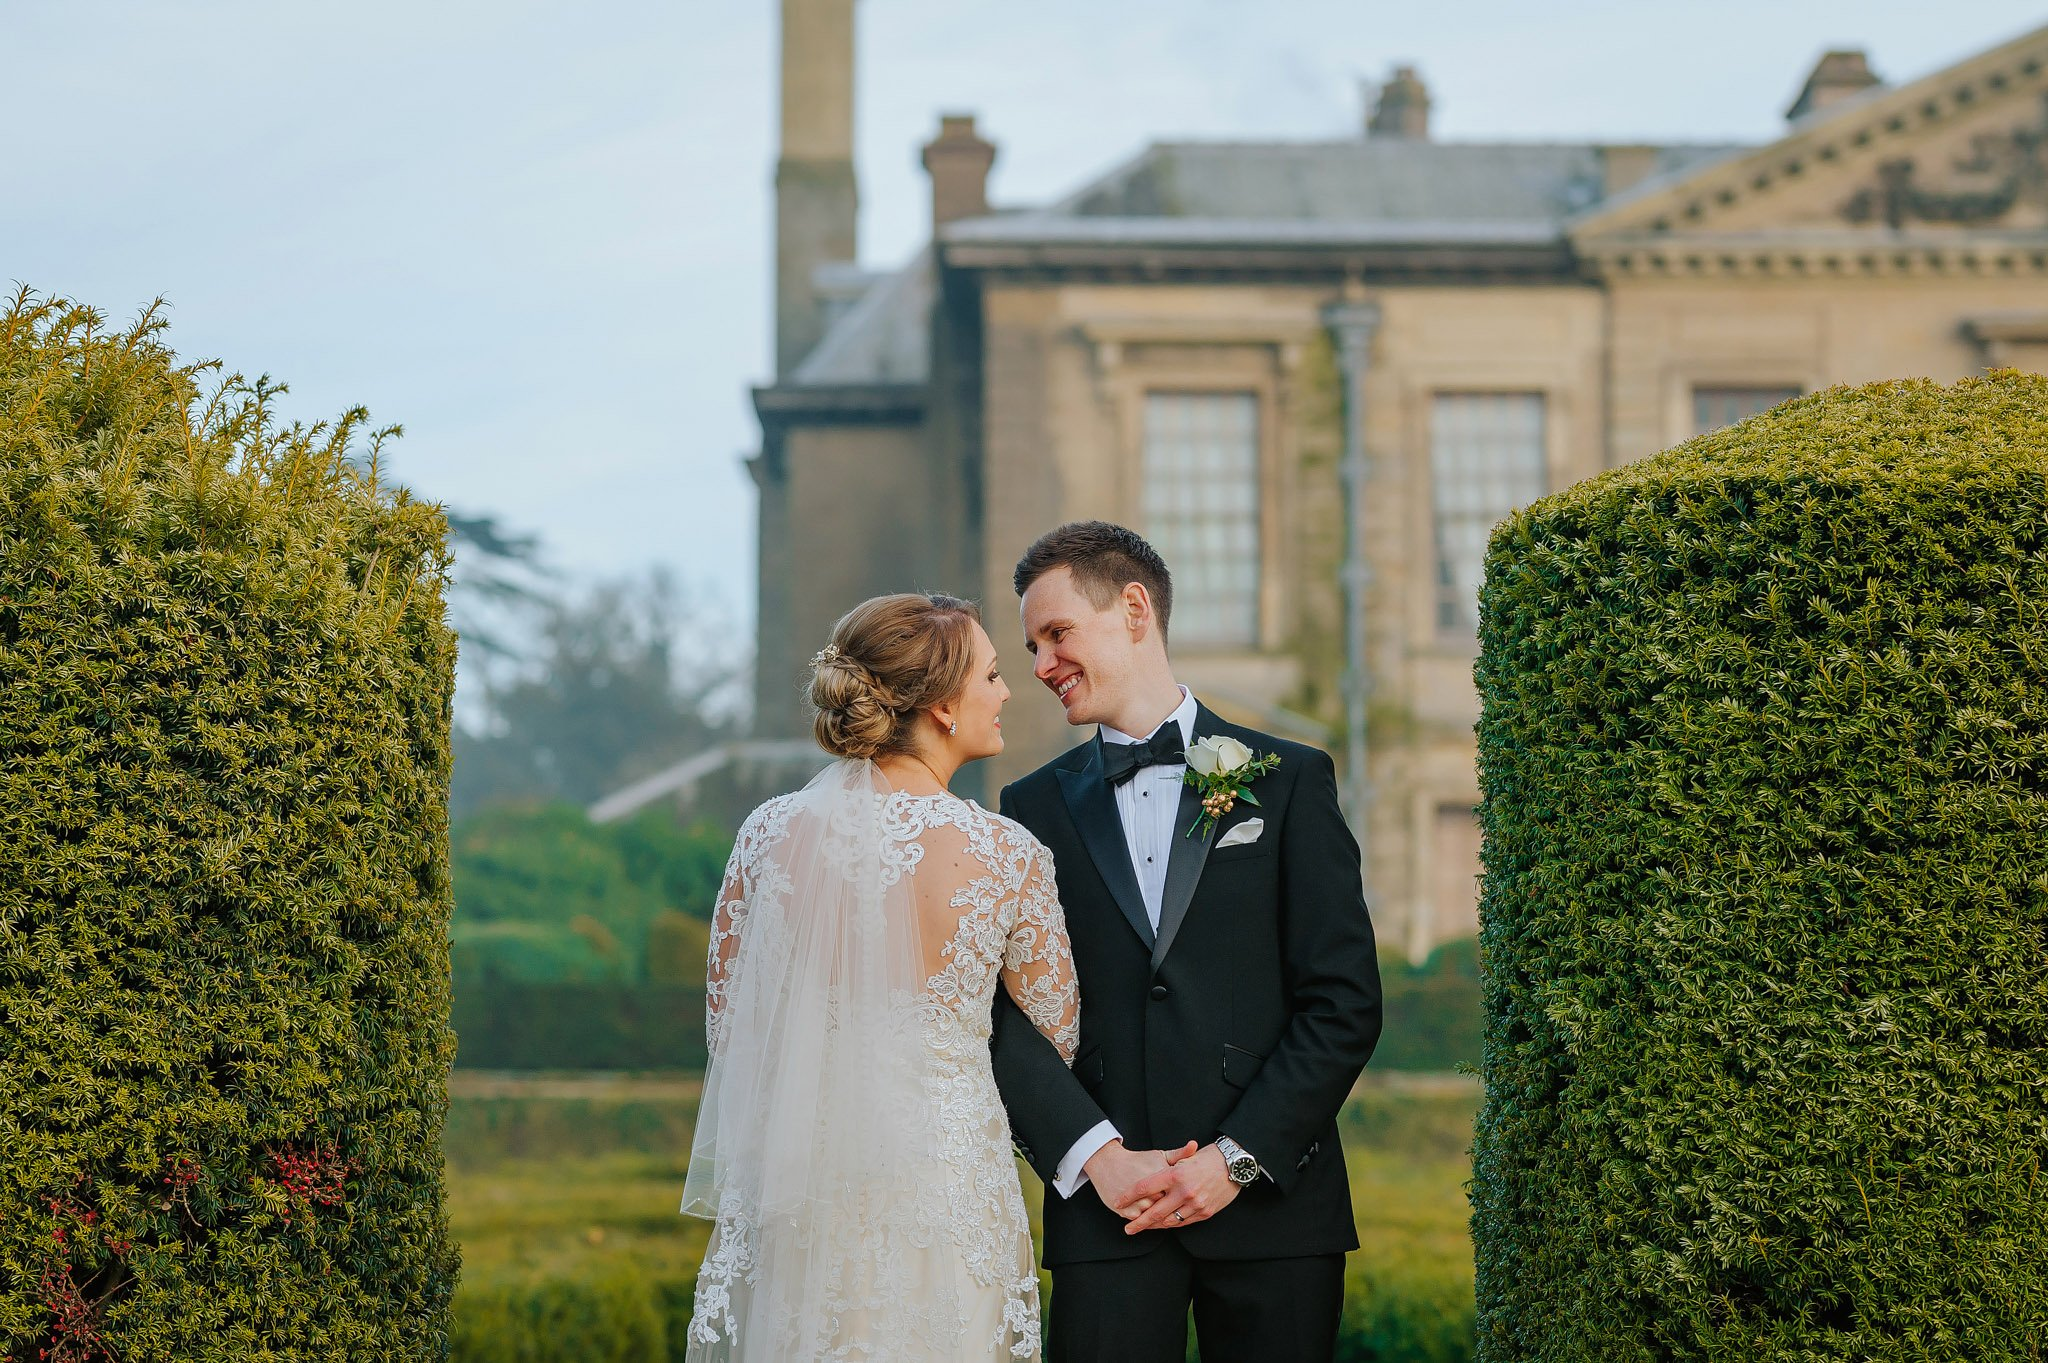 coombe abbey wedding coventry 90 - Coombe Abbey wedding in Coventry, Warwickshire - Sam + Matt